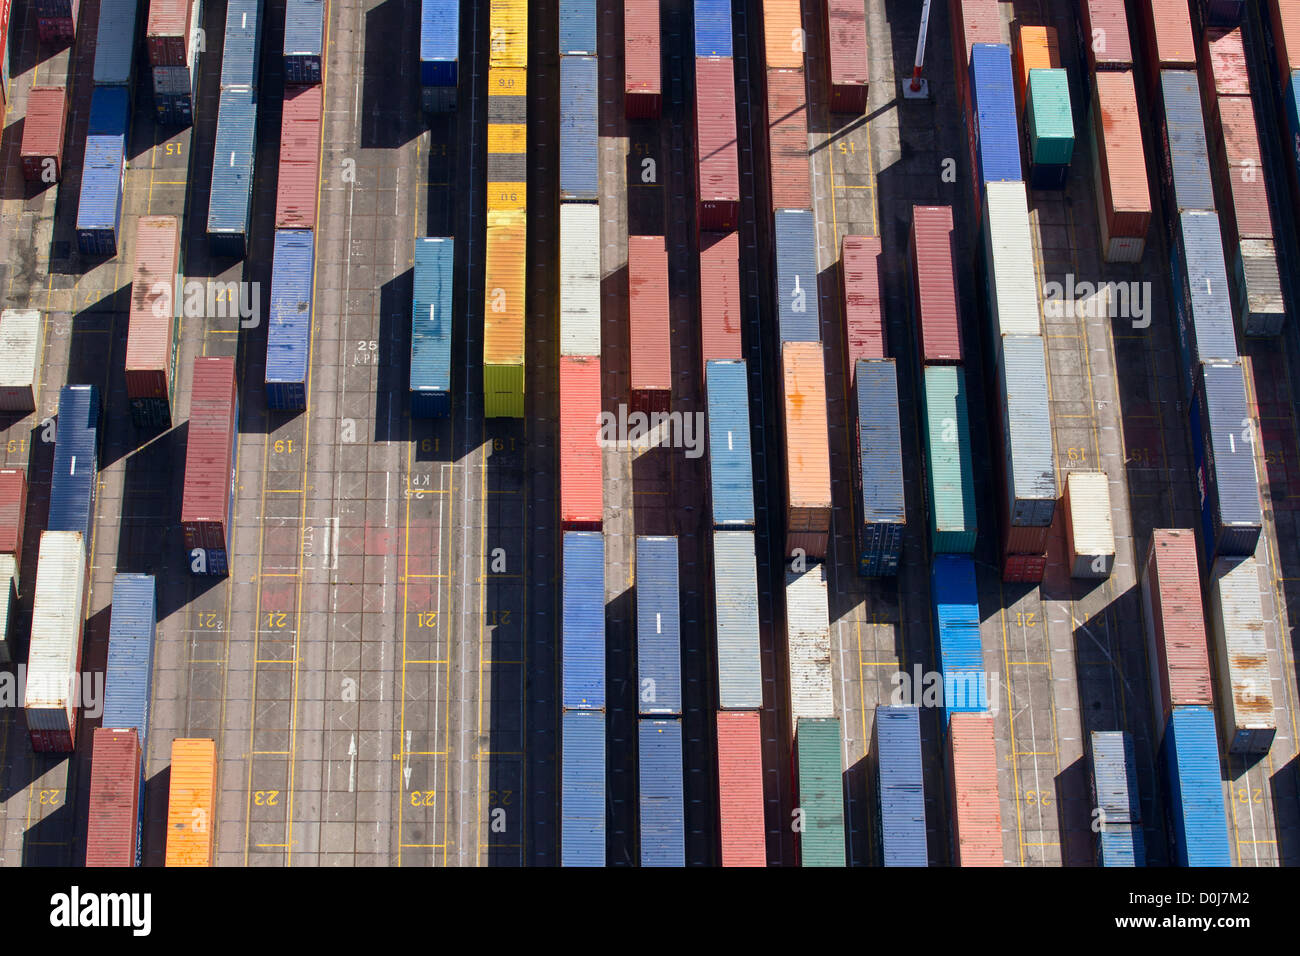 An aerial view of shipping containers at Southampton Docks. Stock Photo